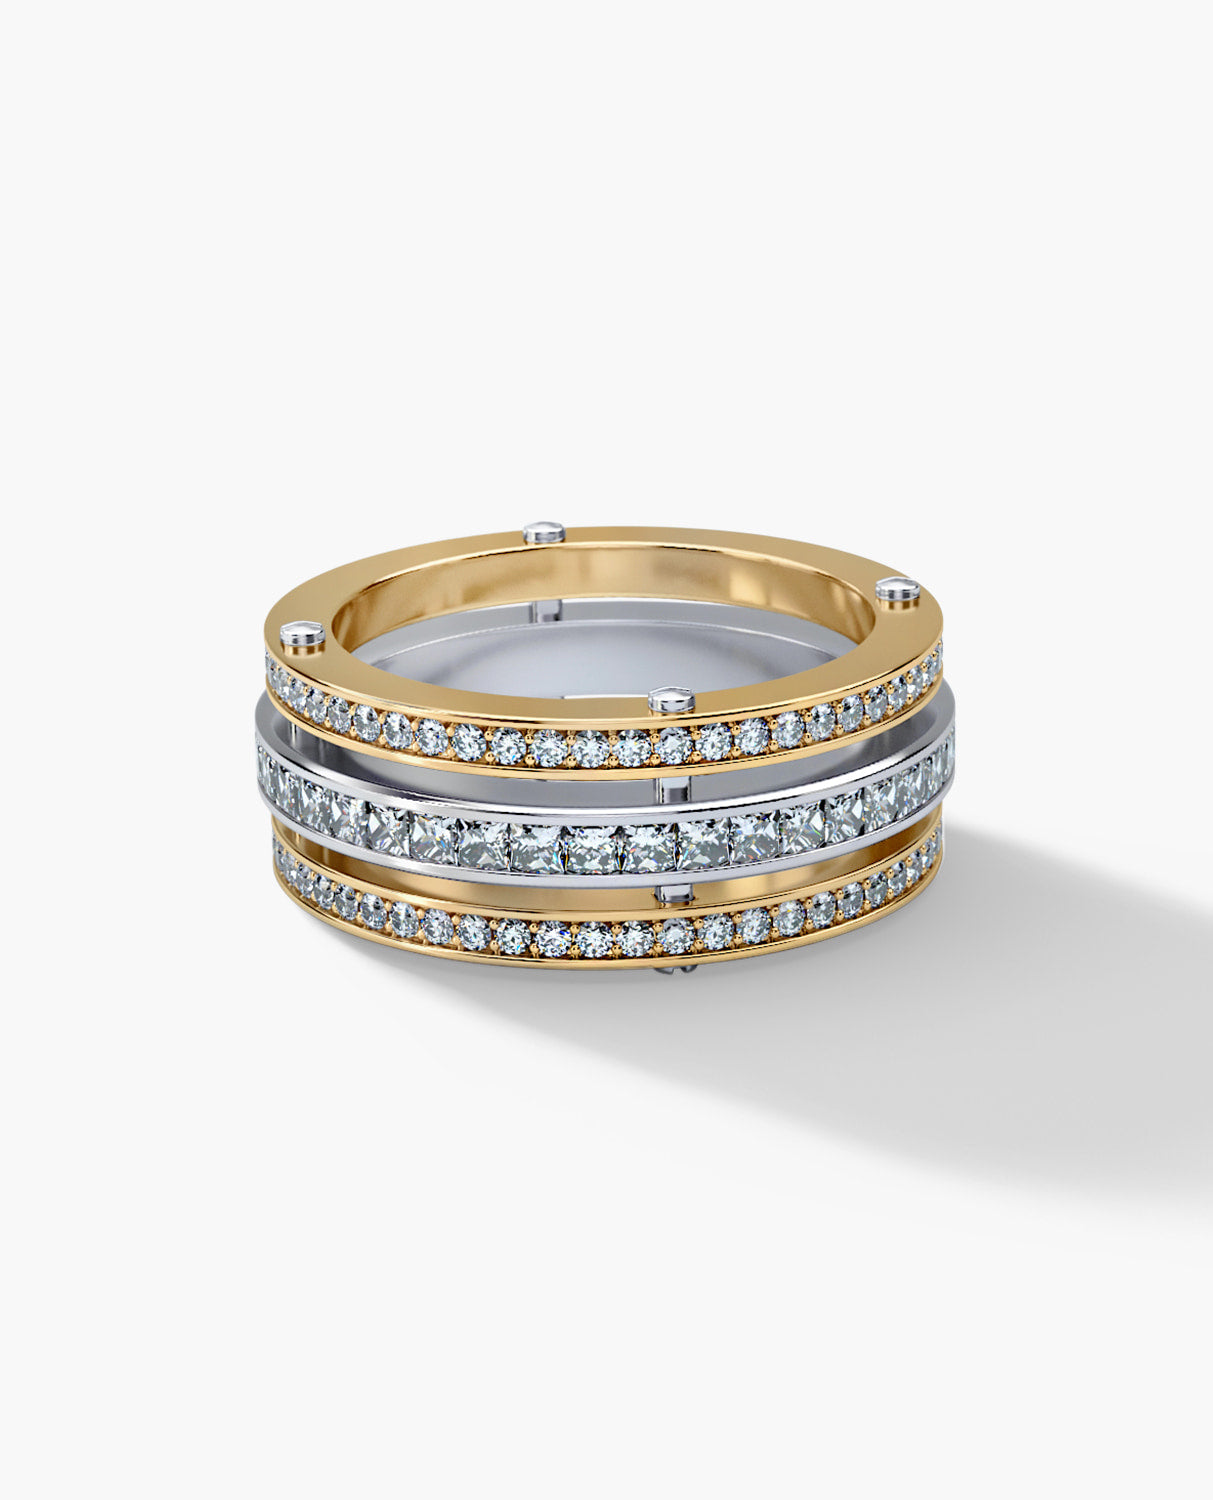 BREWER Mens Two-Tone Gold Wedding Band with 3.10ct Diamonds